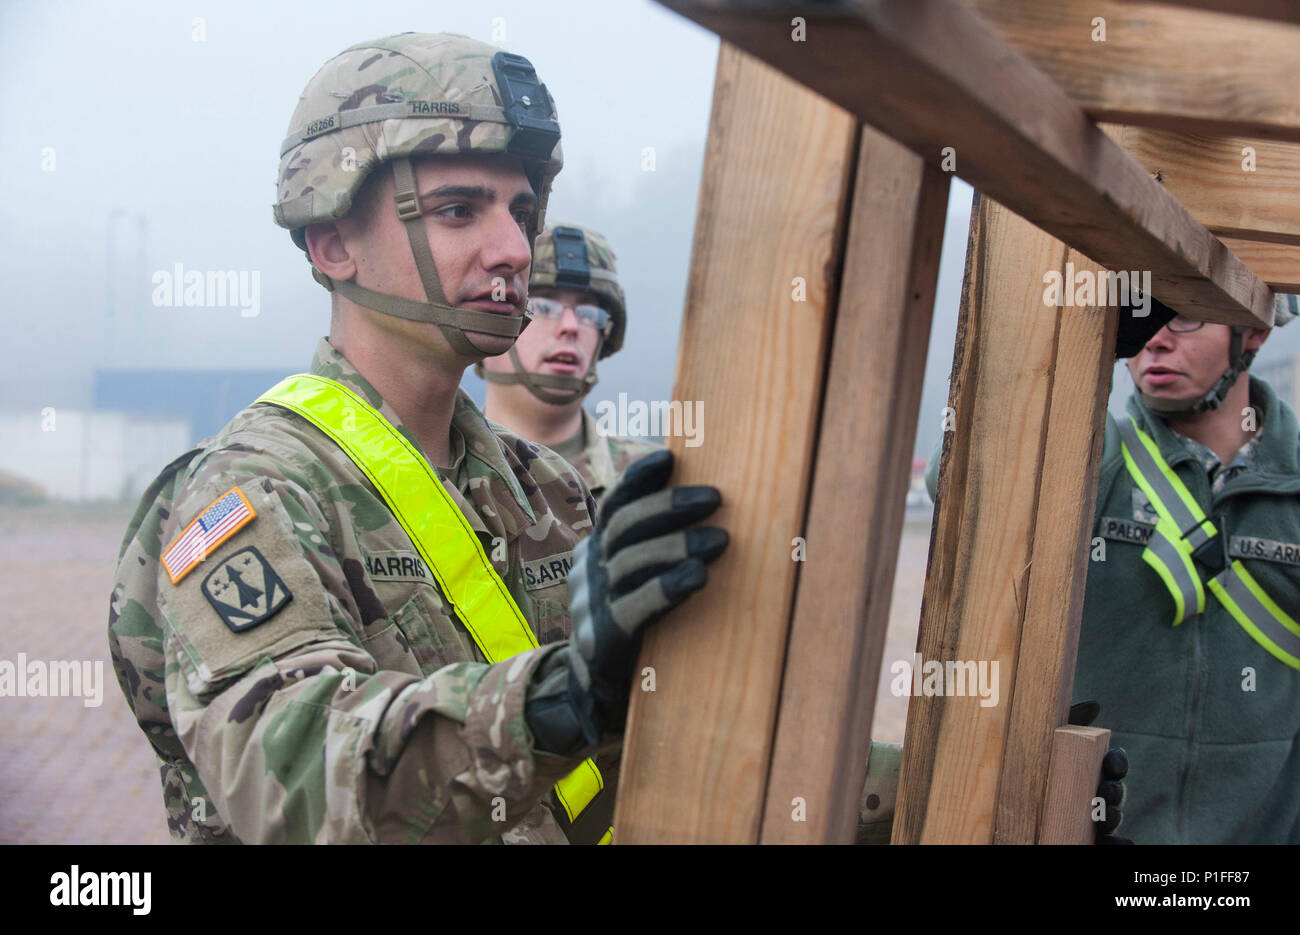 """U.S. Army Sergeant Joseph Harris, with the 5th Battalion, 7th Air Defense Artillery Regiment, unloads wooden support systems during a vehicle transport operation at Rhine Ordnance Barracks in Kaiserslautern, Germany on Oct. 27, 2016. The military transport is in preparation for the 10th Army Air Missile Defense Command's """"Patriot Shock"""" exercise set to happen in Romania over the next several weeks. (DoD News photo by Tech. Sgt. Brian Kimball) - Stock Image"""